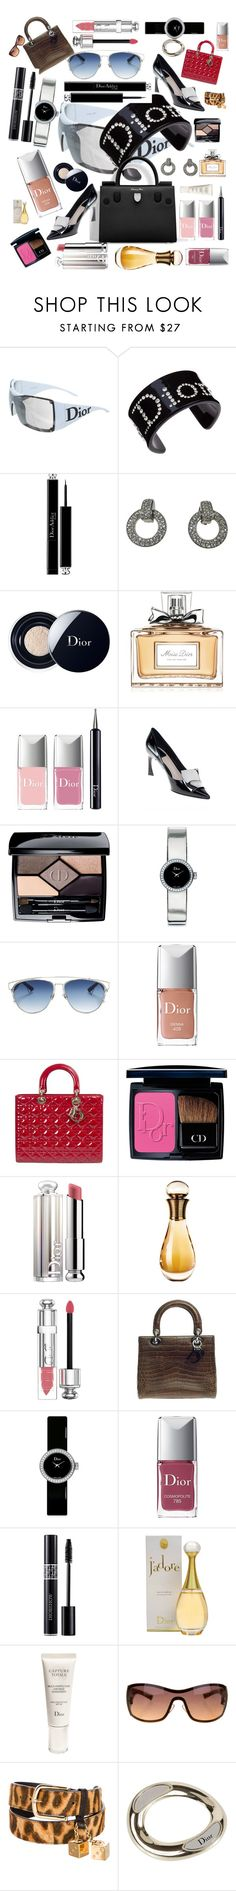 """""""Dior Accessories"""" by kotnourka ❤ liked on Polyvore featuring Christian Dior"""